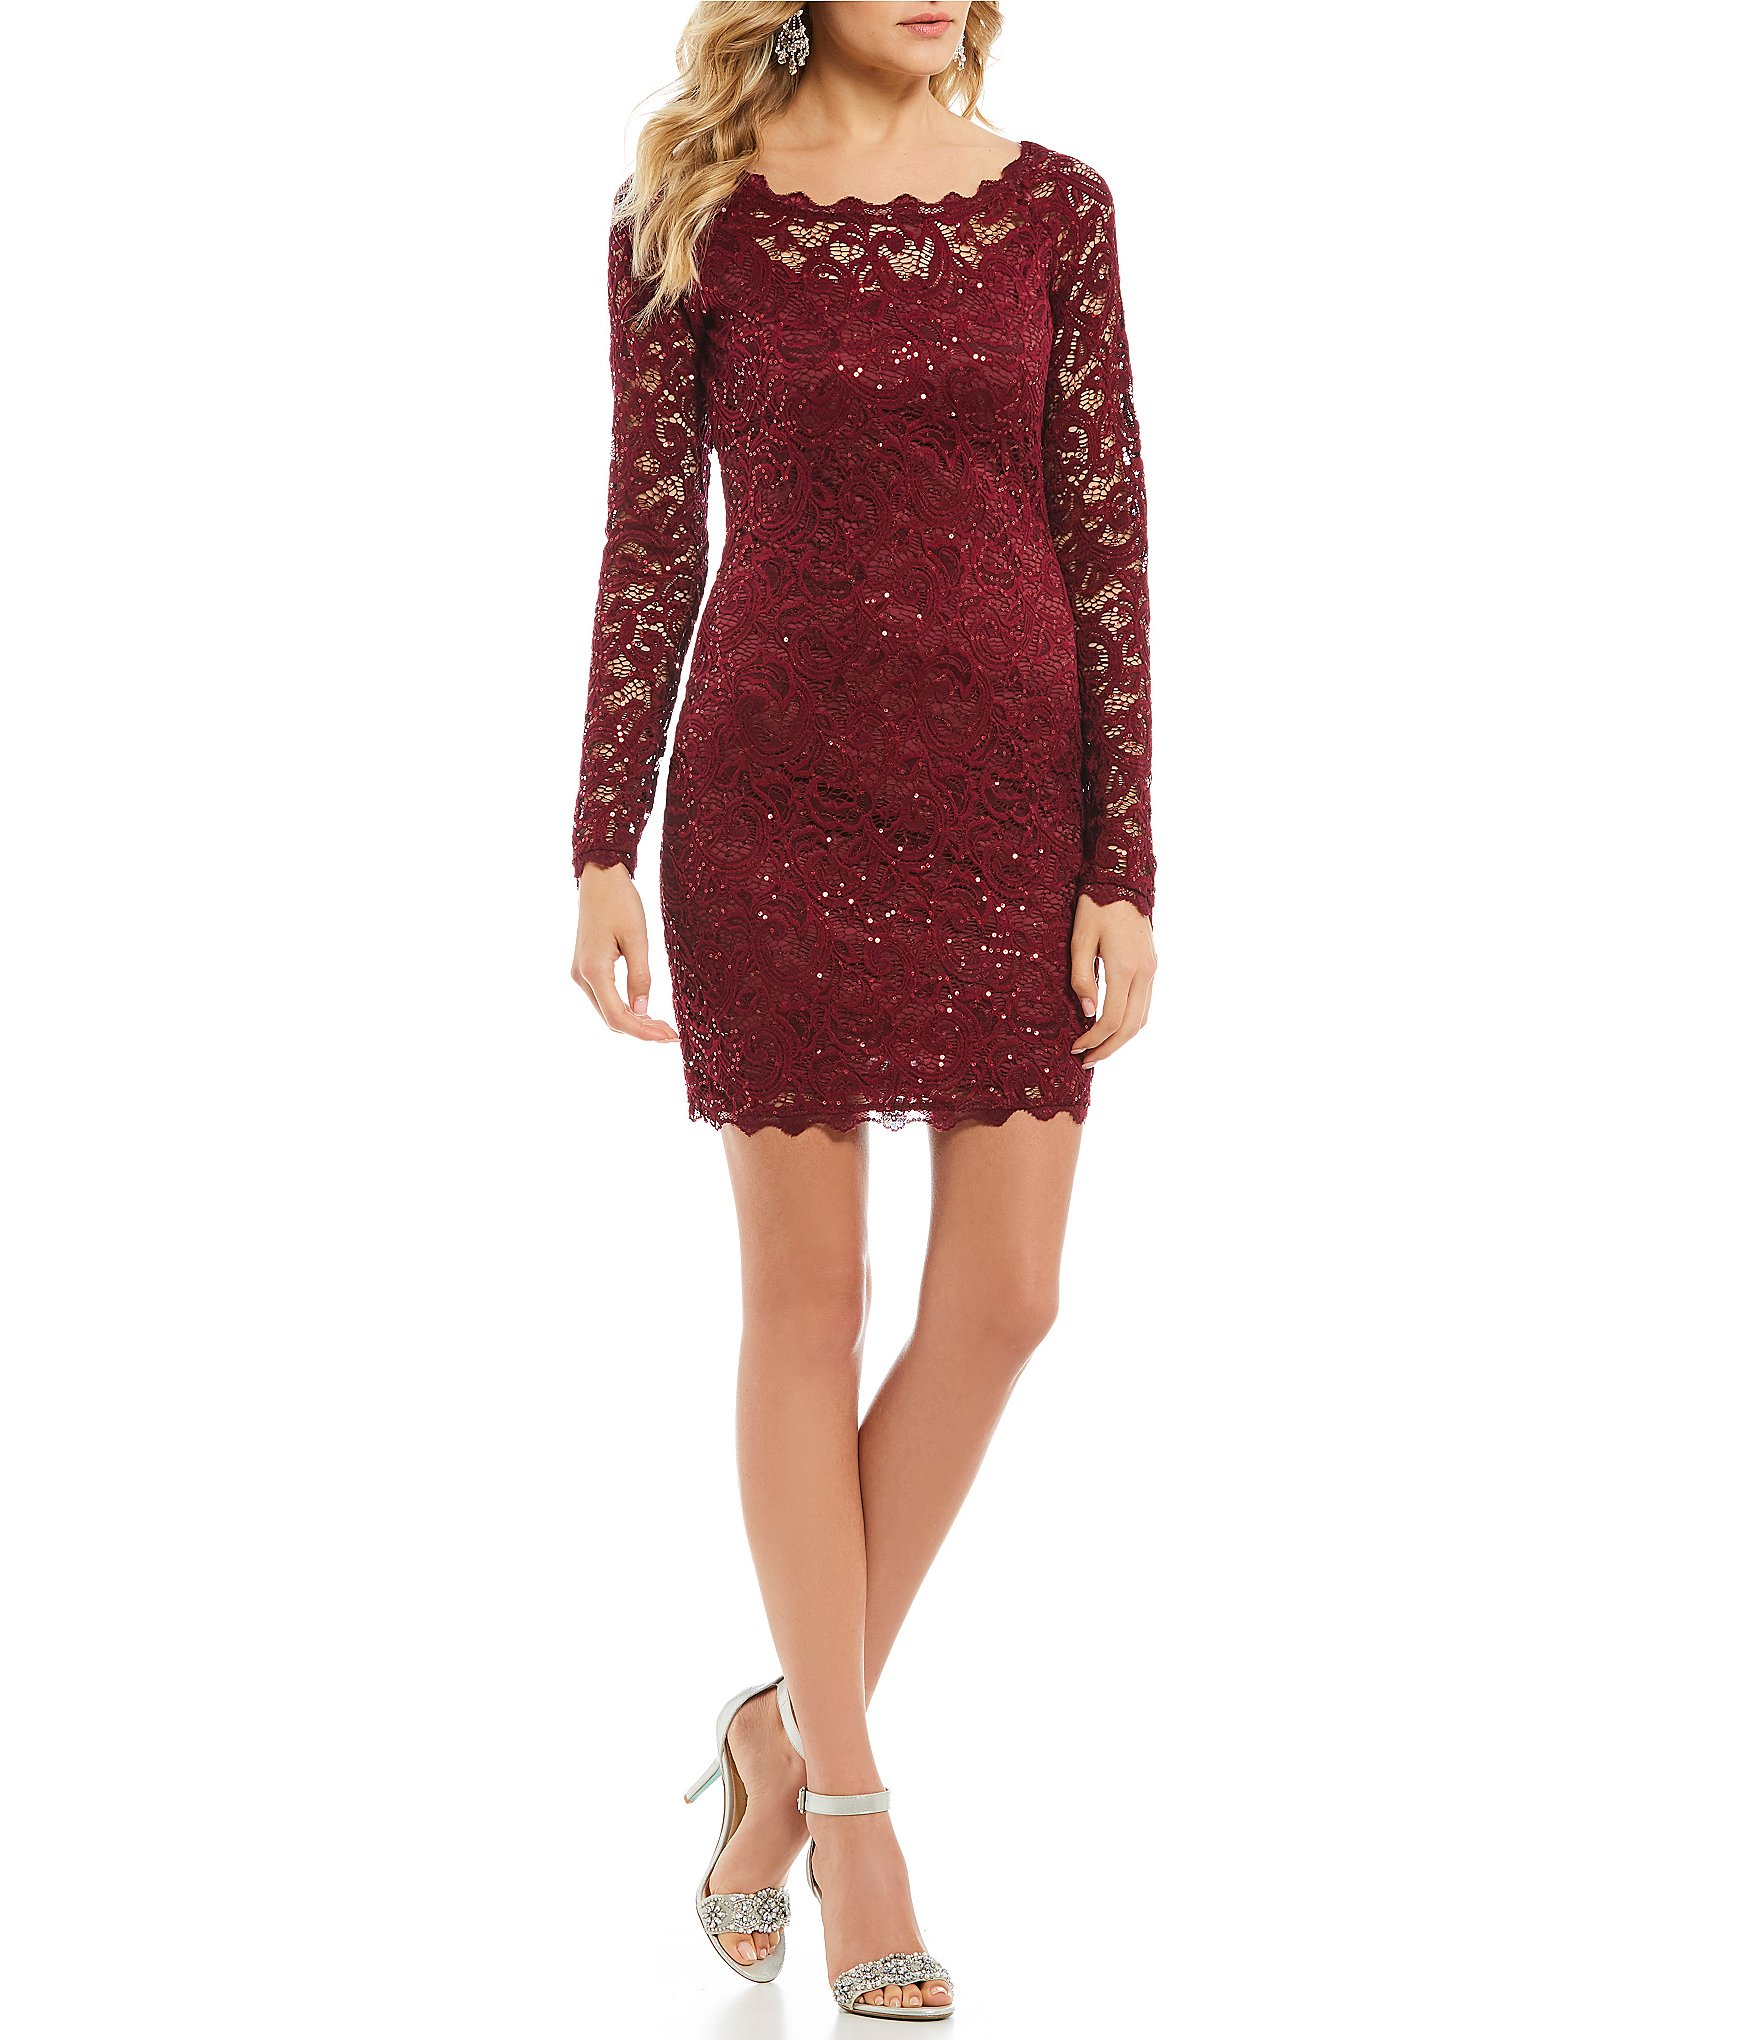 Sequin Hearts Long Sleeve Sequin Lace Sheath Dress | Dillard's